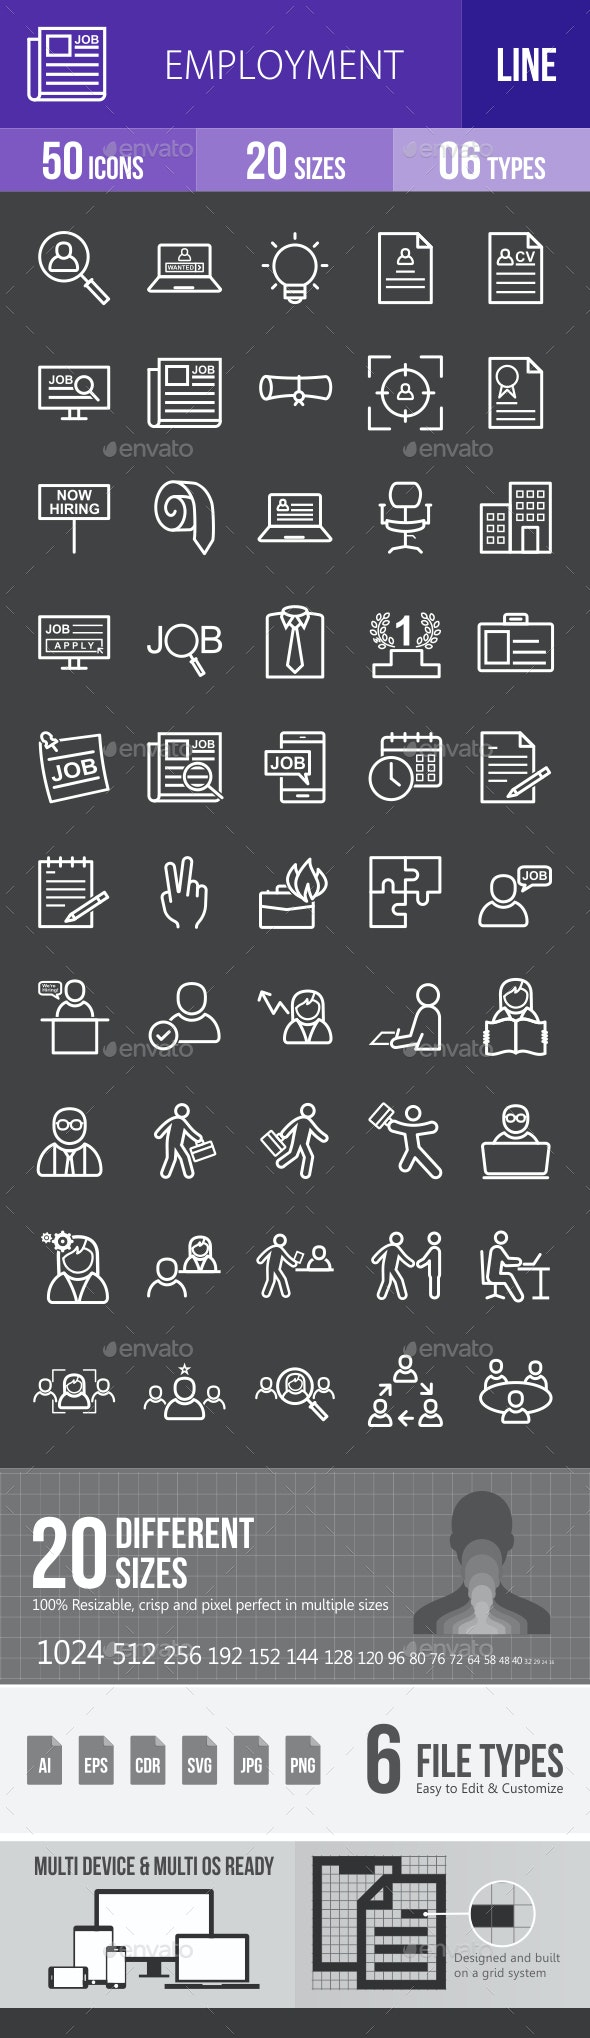 Employment Line Inverted Icons - Icons